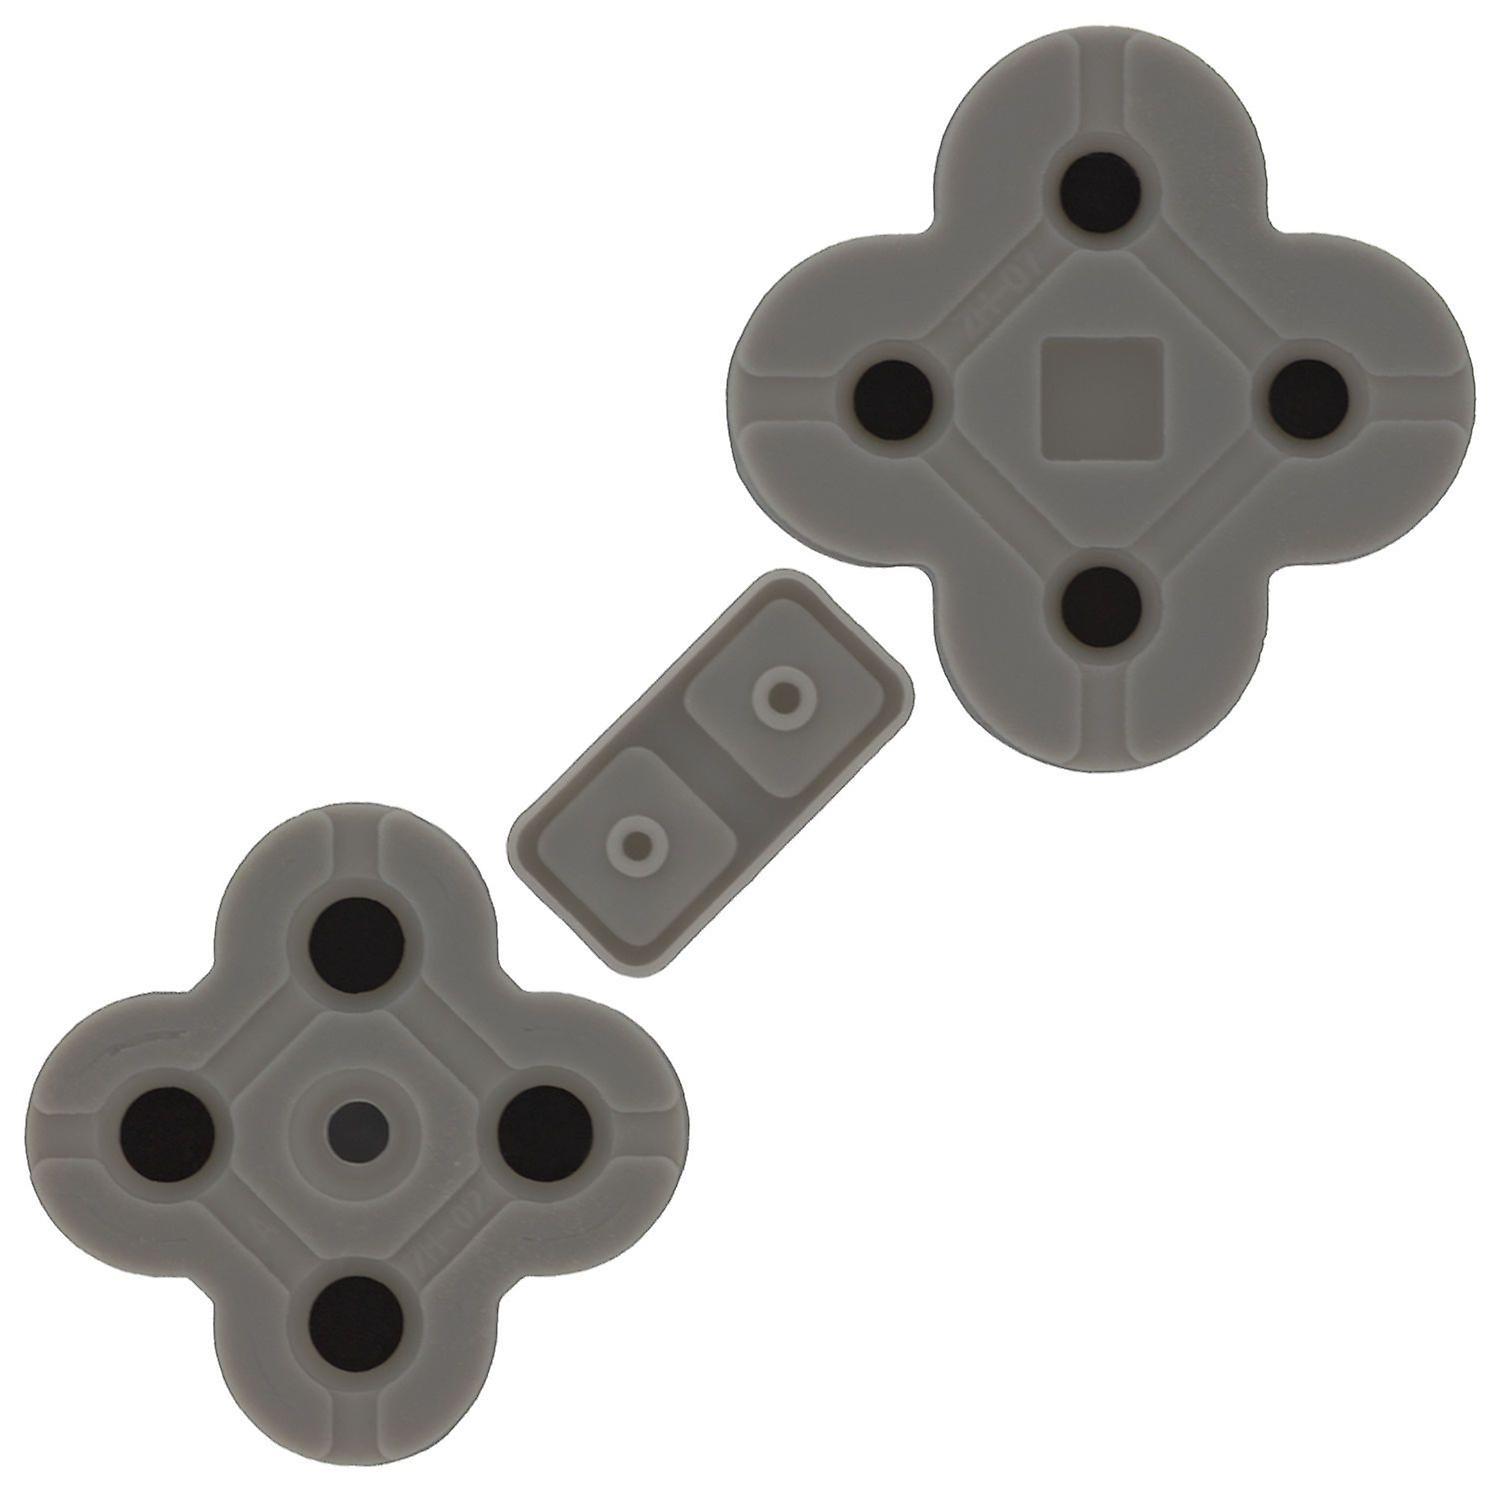 Replacement conductive rubber pad button contacts gasket a b x y d-pad kit for nintendo ds lite (dsl ndsl)